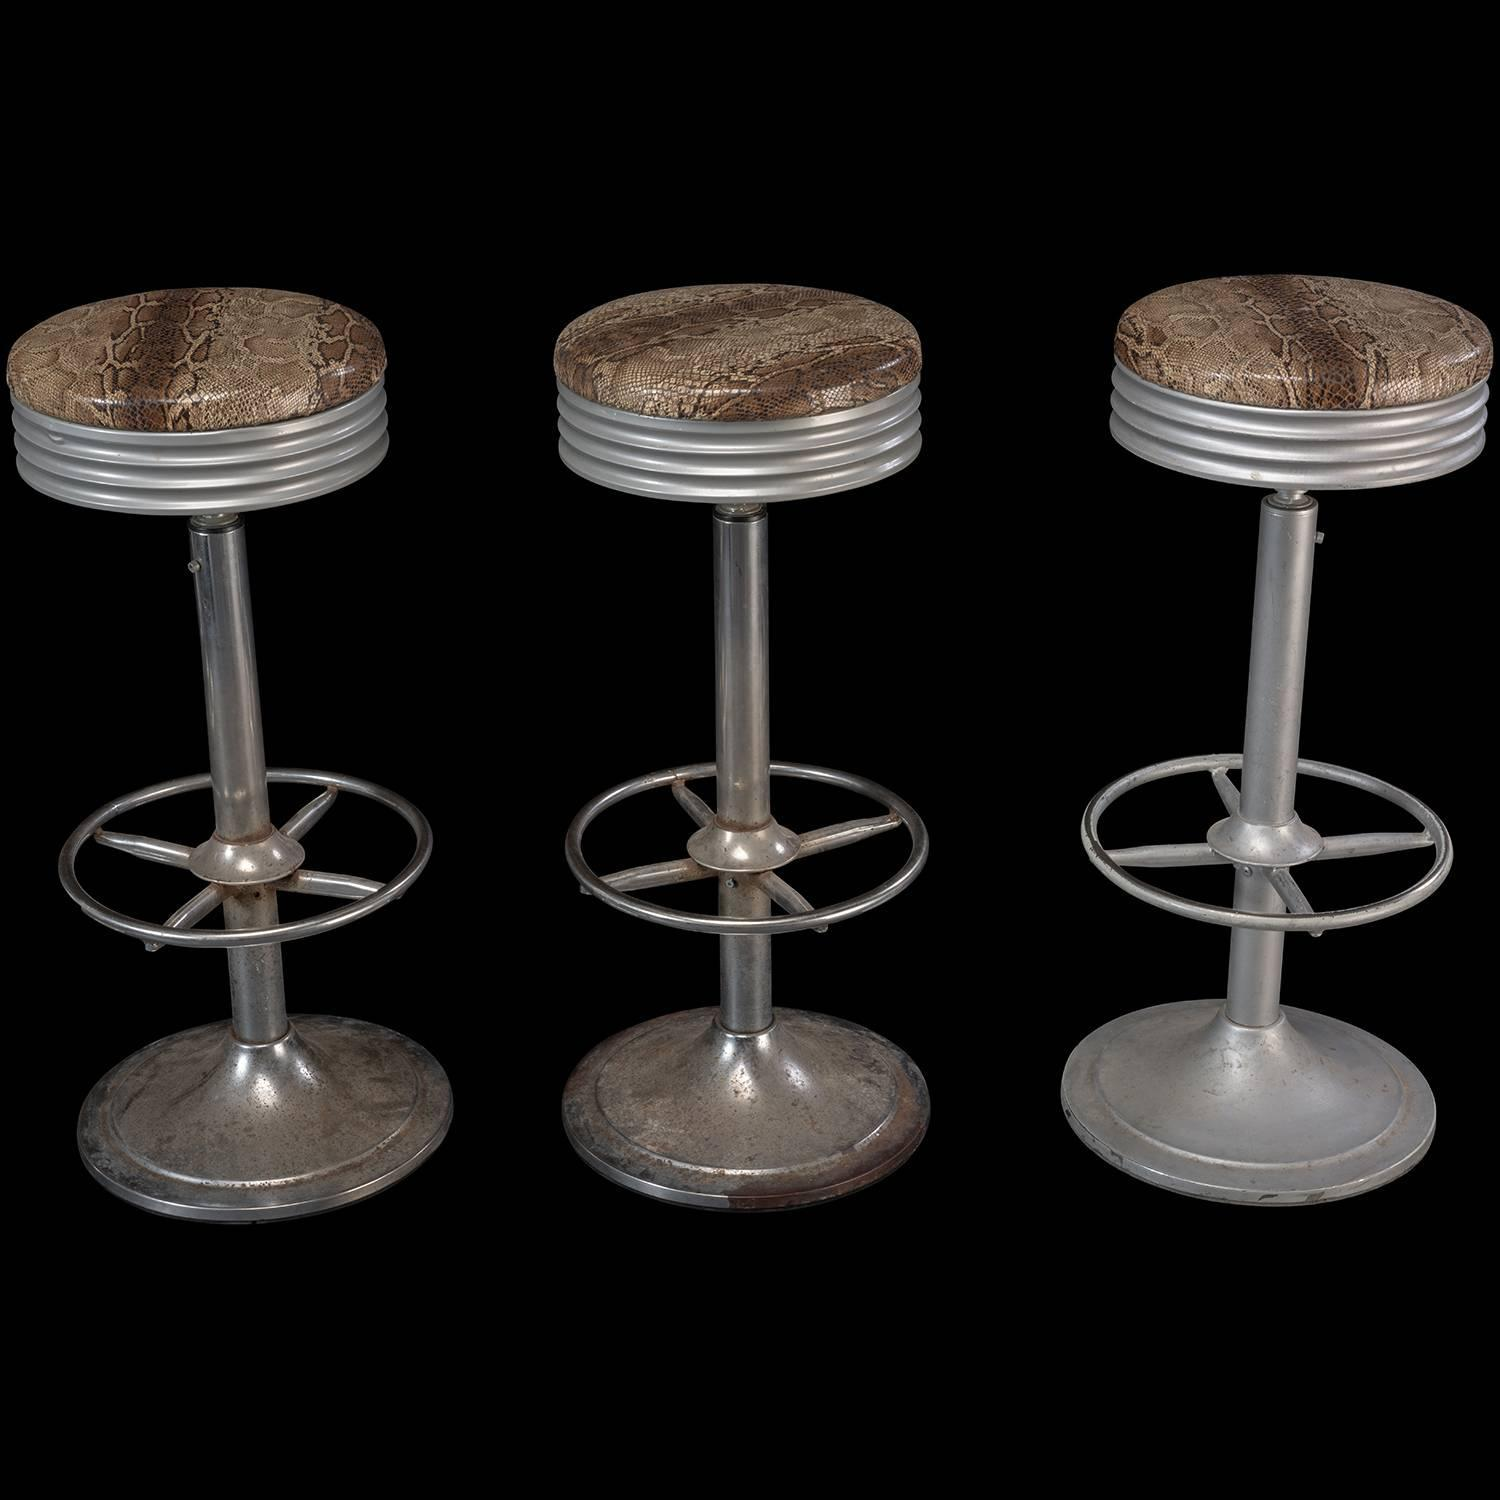 Faux Snakeskin Bar Stools Circa 1970 For Sale At 1stdibs